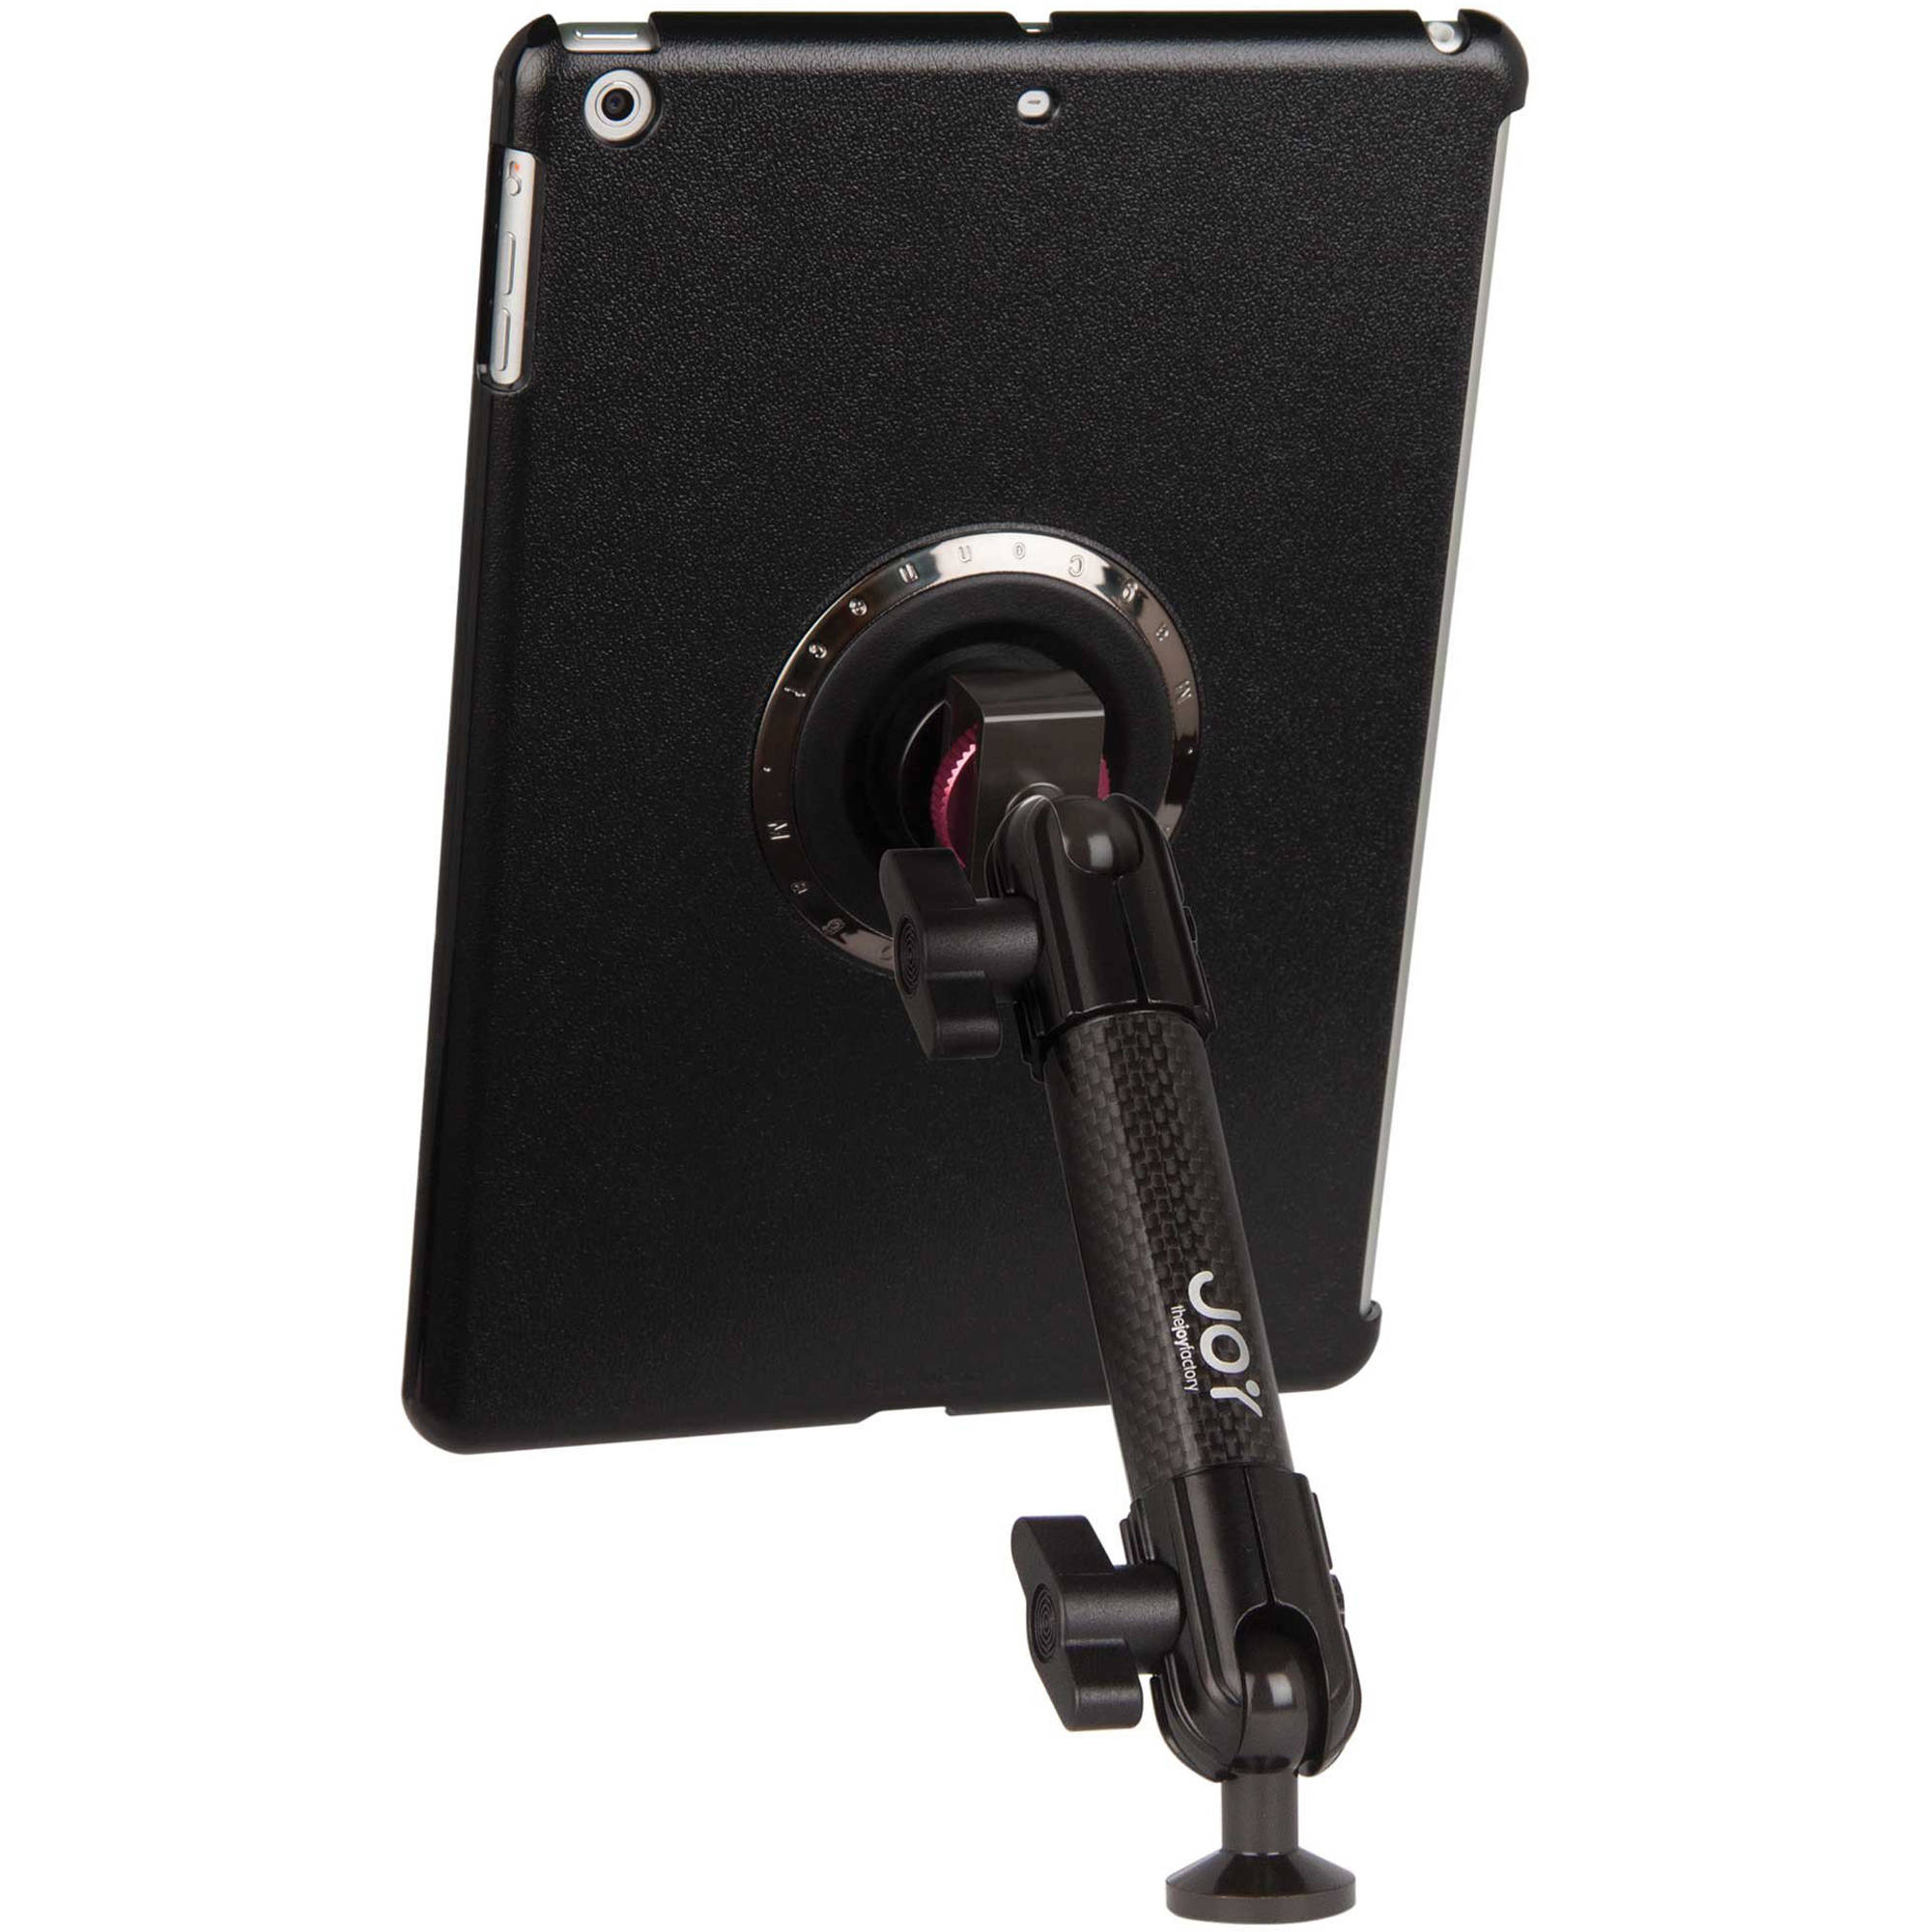 the joy factory mma201 magconnect tripod mic stand mount mma201. Black Bedroom Furniture Sets. Home Design Ideas